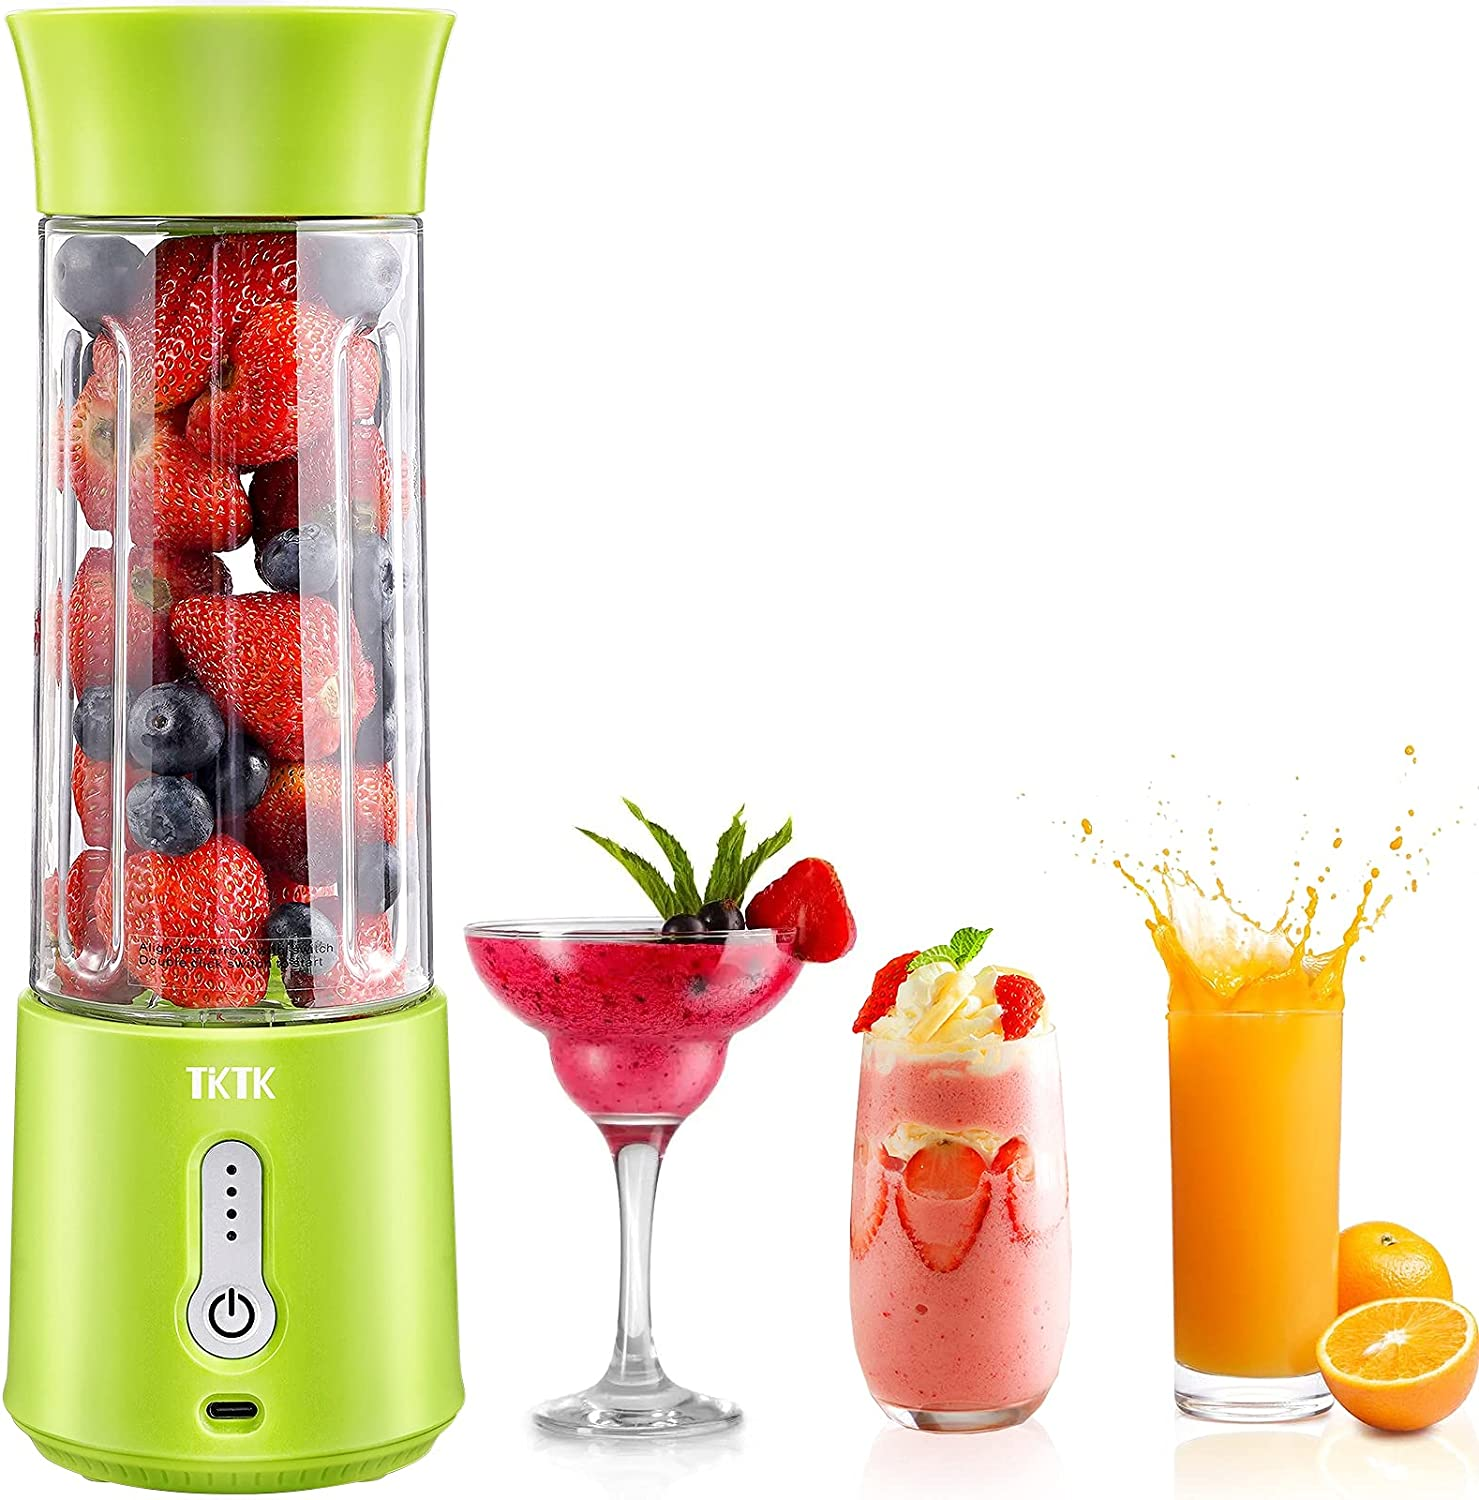 Portable Blender, TKTK 18 Oz Personal Blender for Shakes and Smoothies, 150W Powerful Smoothie Blender with Rechargeable USB, Sharp 6 Blades, BPA-Free Food Grade for Travel, Office